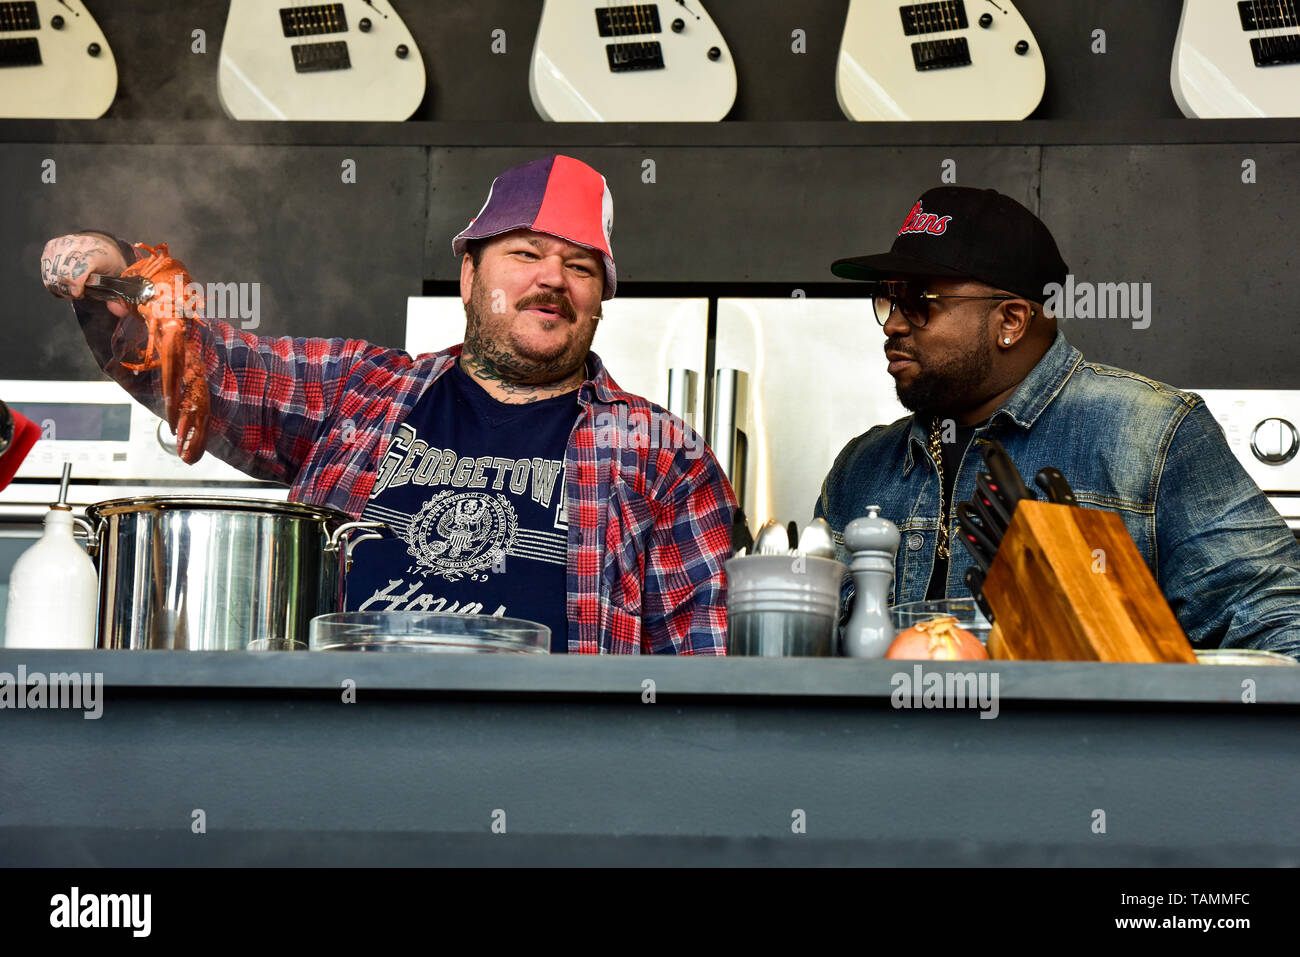 Napa, USA. 26th May, 2019. Napa, California, May 26, 2019, Chef Matty Matheson and Big Boi on the Williams & Sonoma cullinary stage at the 2019 Bottle Rock Festival, Day3 BottleRock Credit: Ken Howard/Alamy Live News Stock Photo